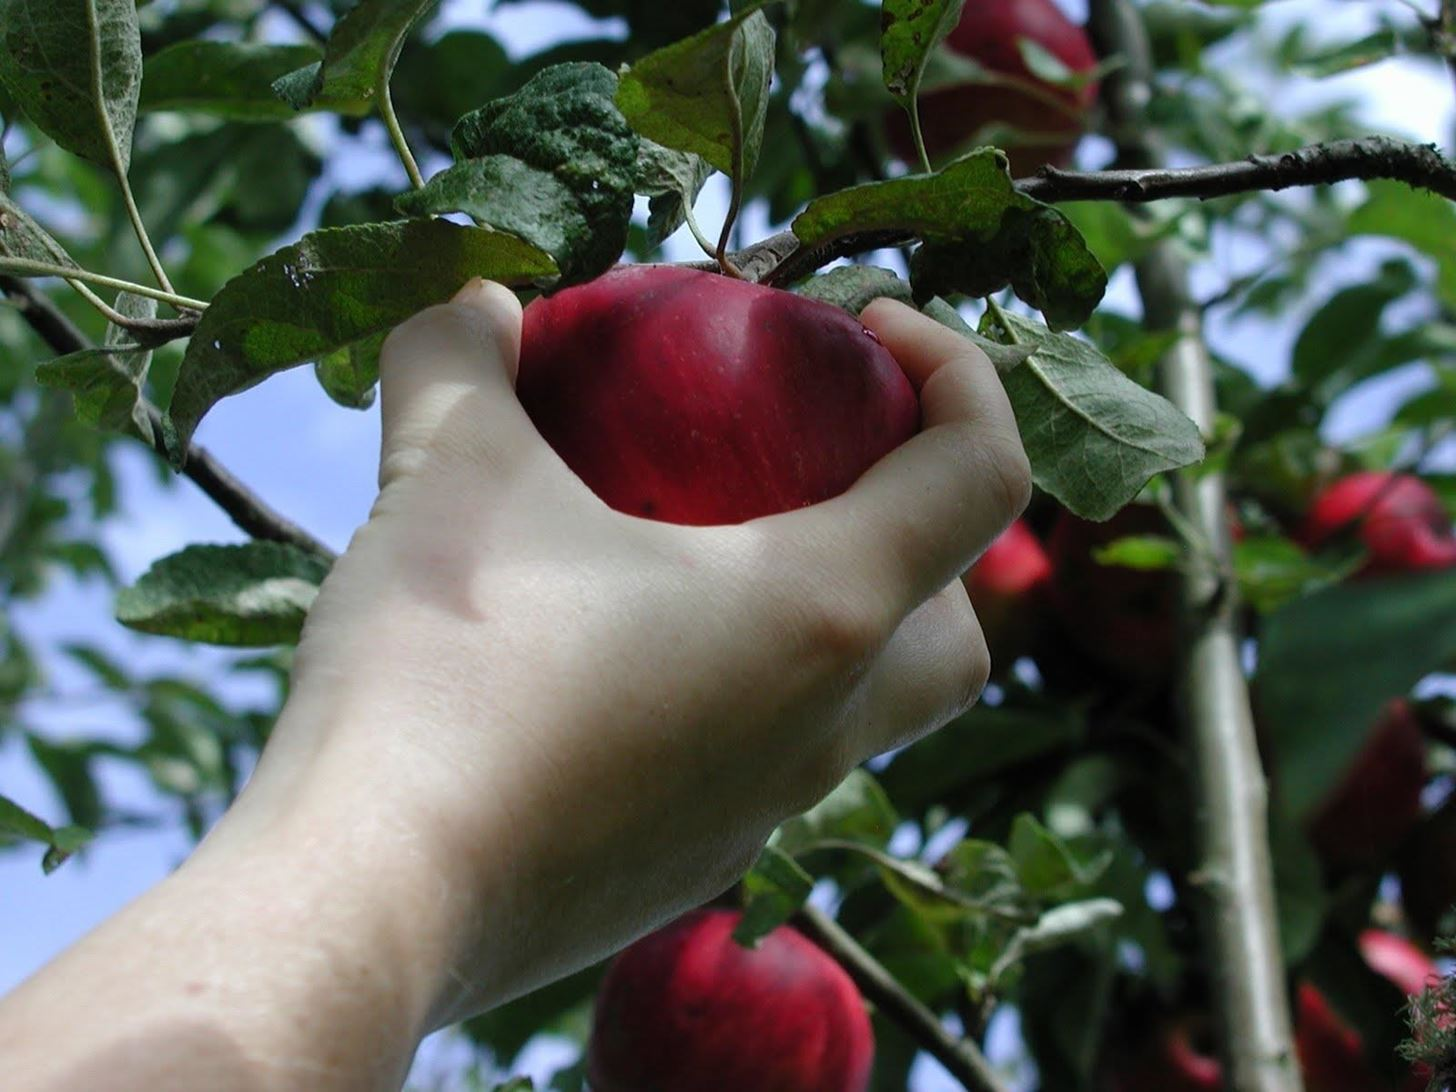 Nature's Secret Code: How to Pick Perfectly Ripe Fruit Every Time